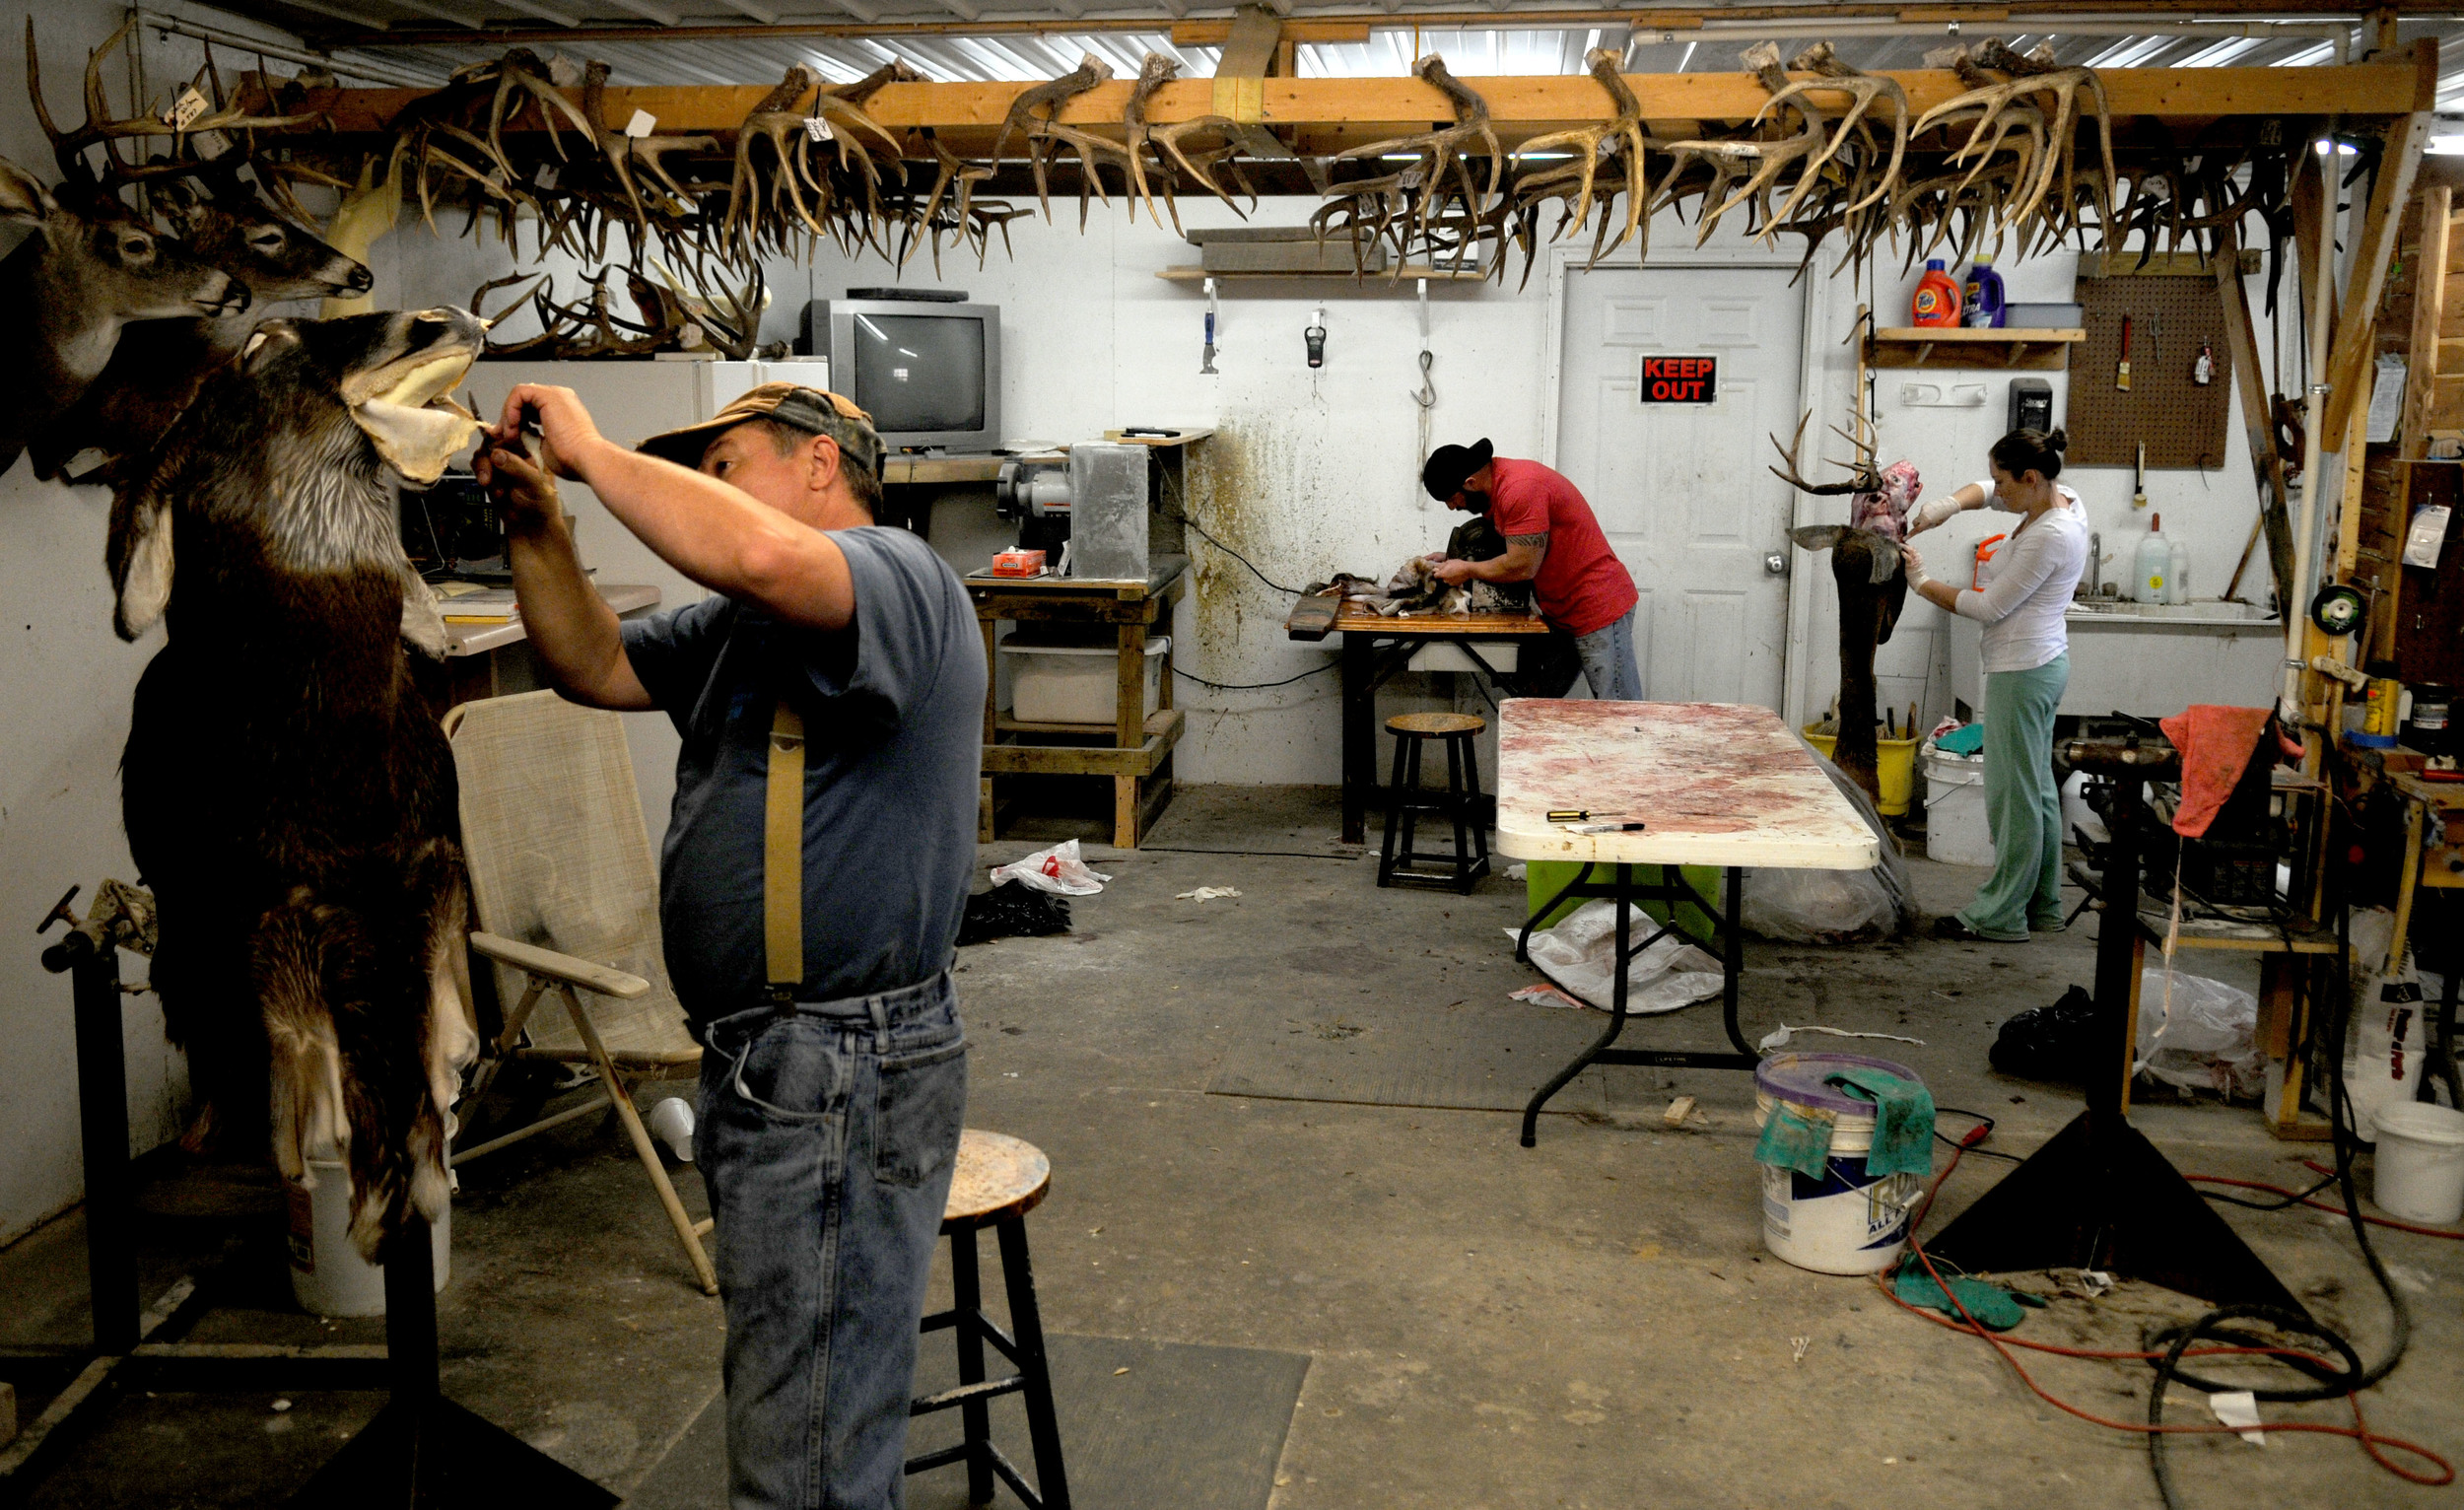 Jim McIntosh (right) works on a deer mount in his Morgantown, Kentucky, taxidermy shop on Wednesday, November fourteenth. Since business is growing, he hired his son, Travis (middle) two months ago to work part time and his daughter Janelle (right) a year ago to work with him five days a week.